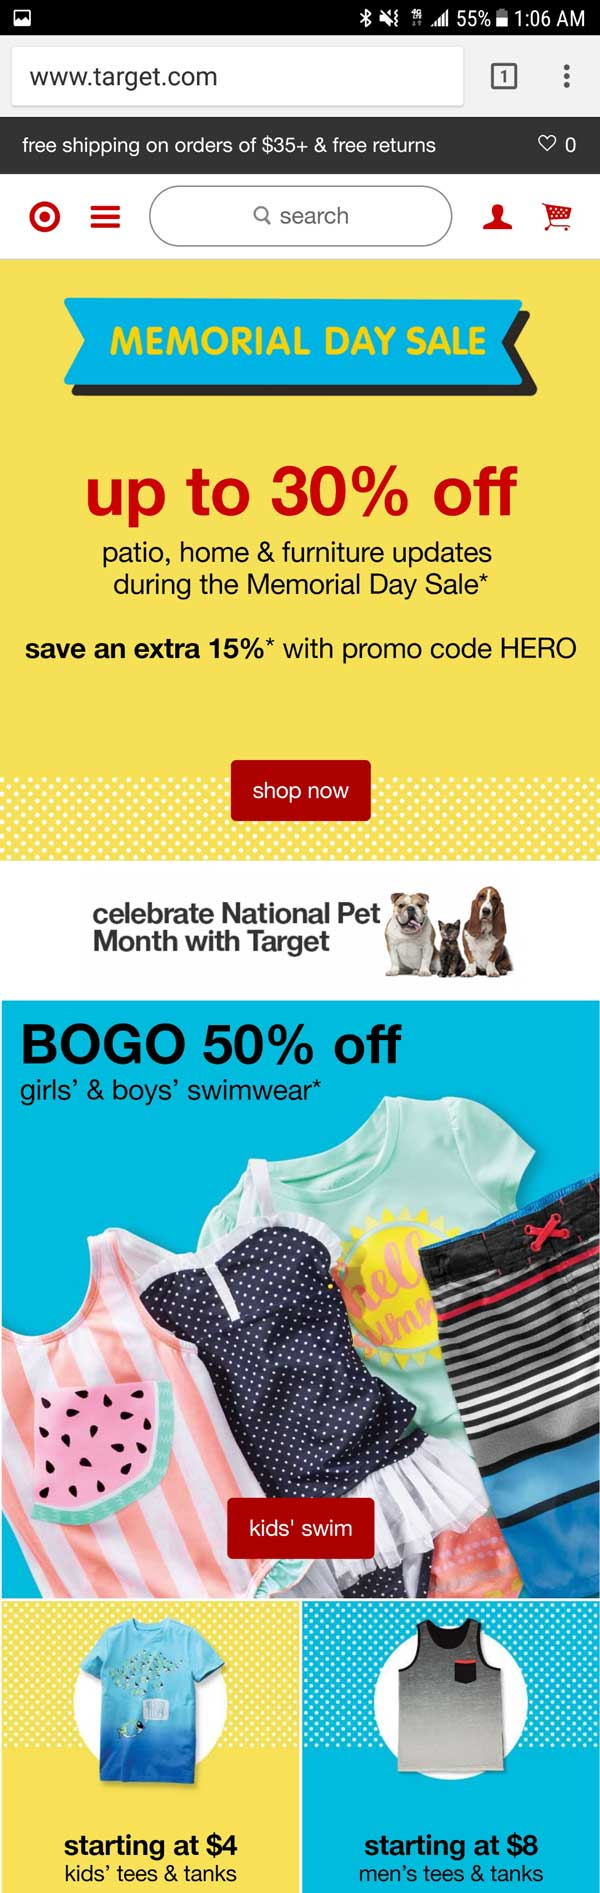 Target's Mobile Home Page Is Tapable